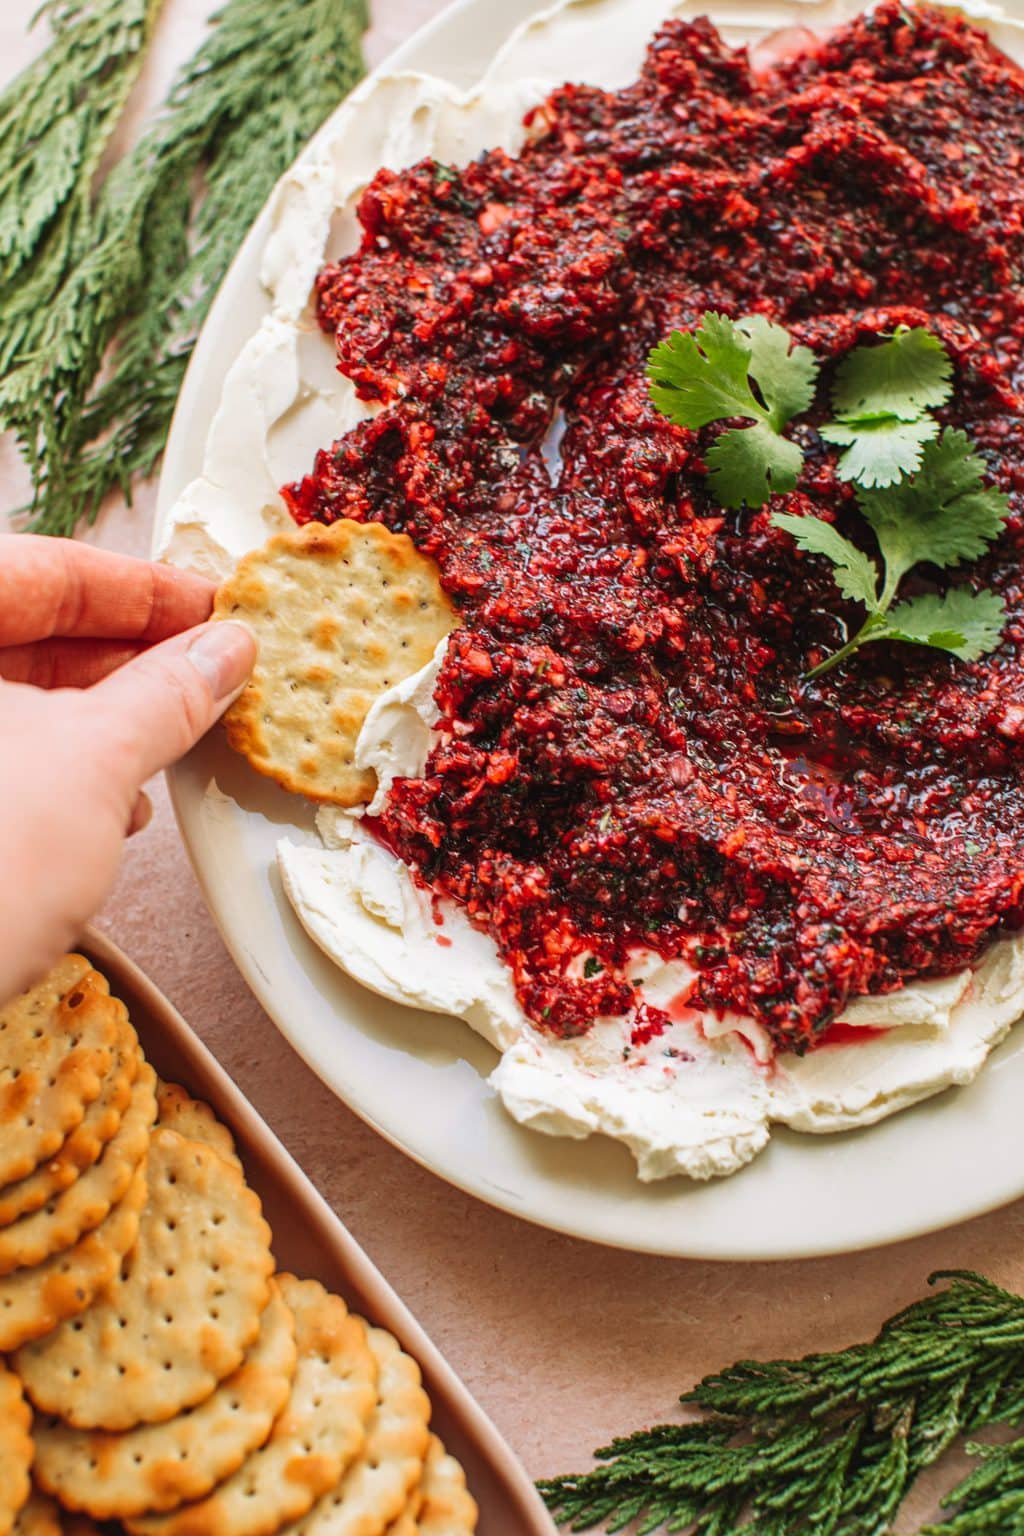 Hand dipping cracker in red jalapeño cranberry dip with cream cheese spread on white plate next to dish of crackers